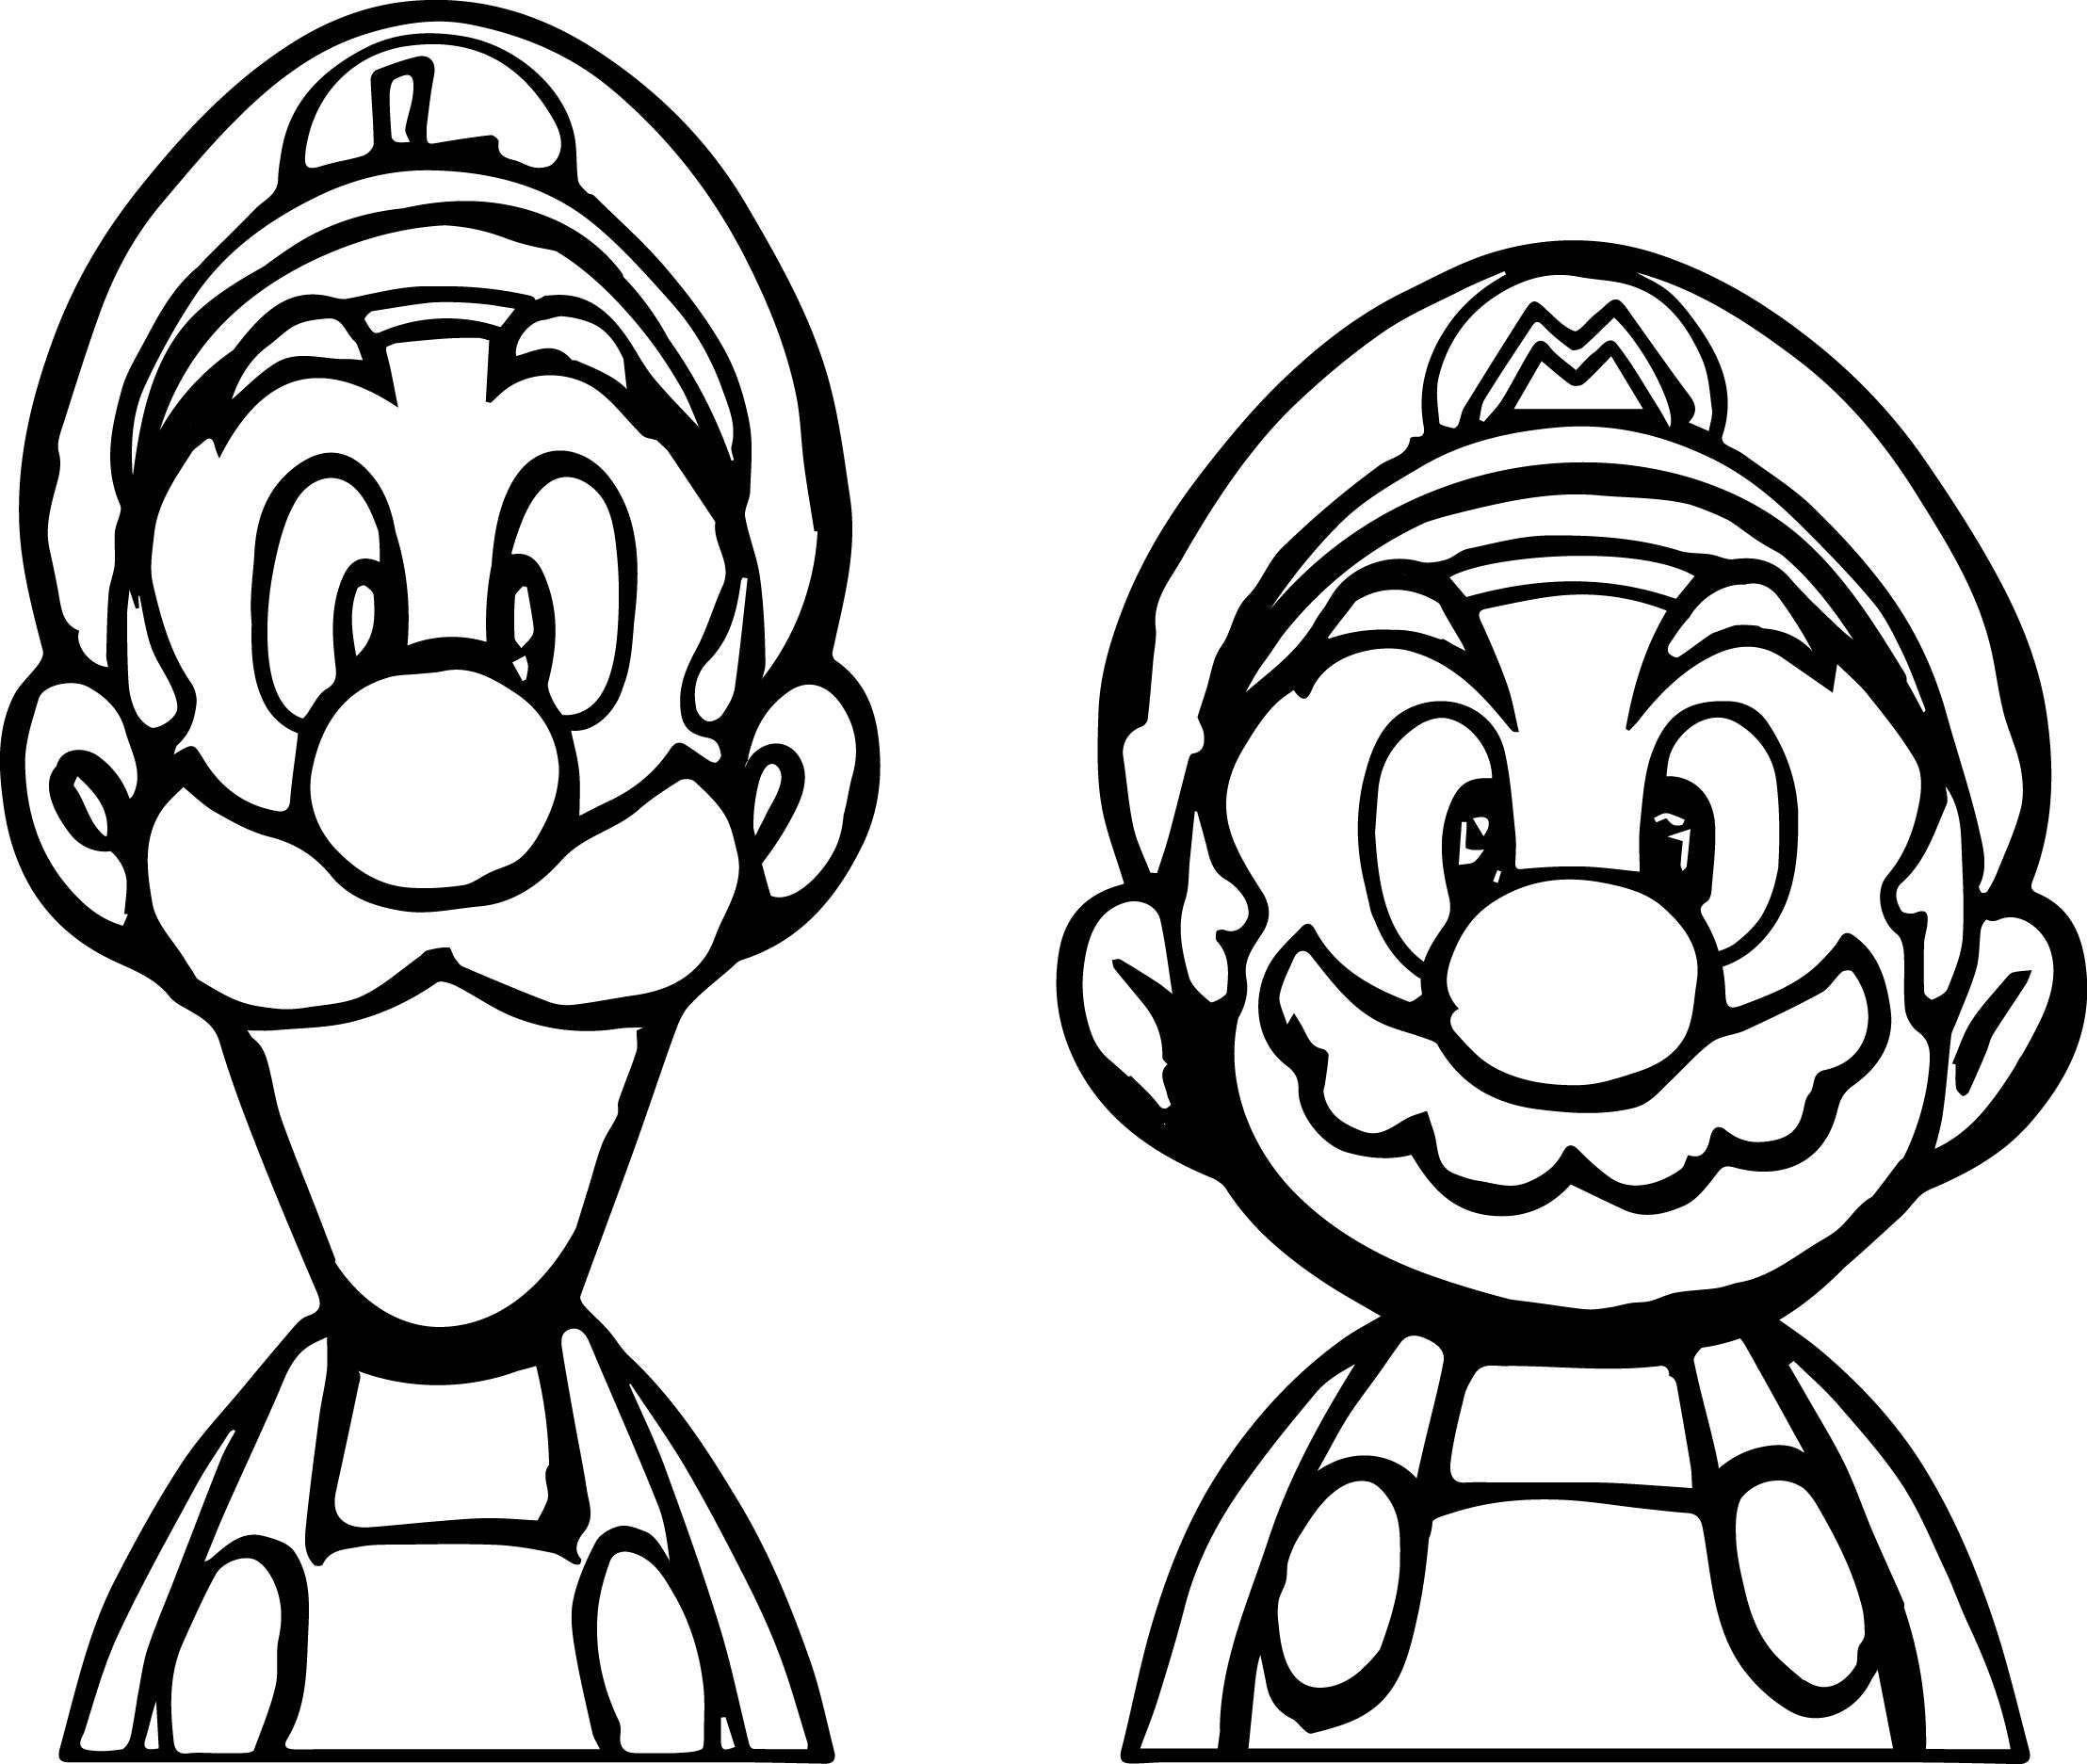 25 Awesome Super Mario Coloring Pages In 2020 Mario Coloring